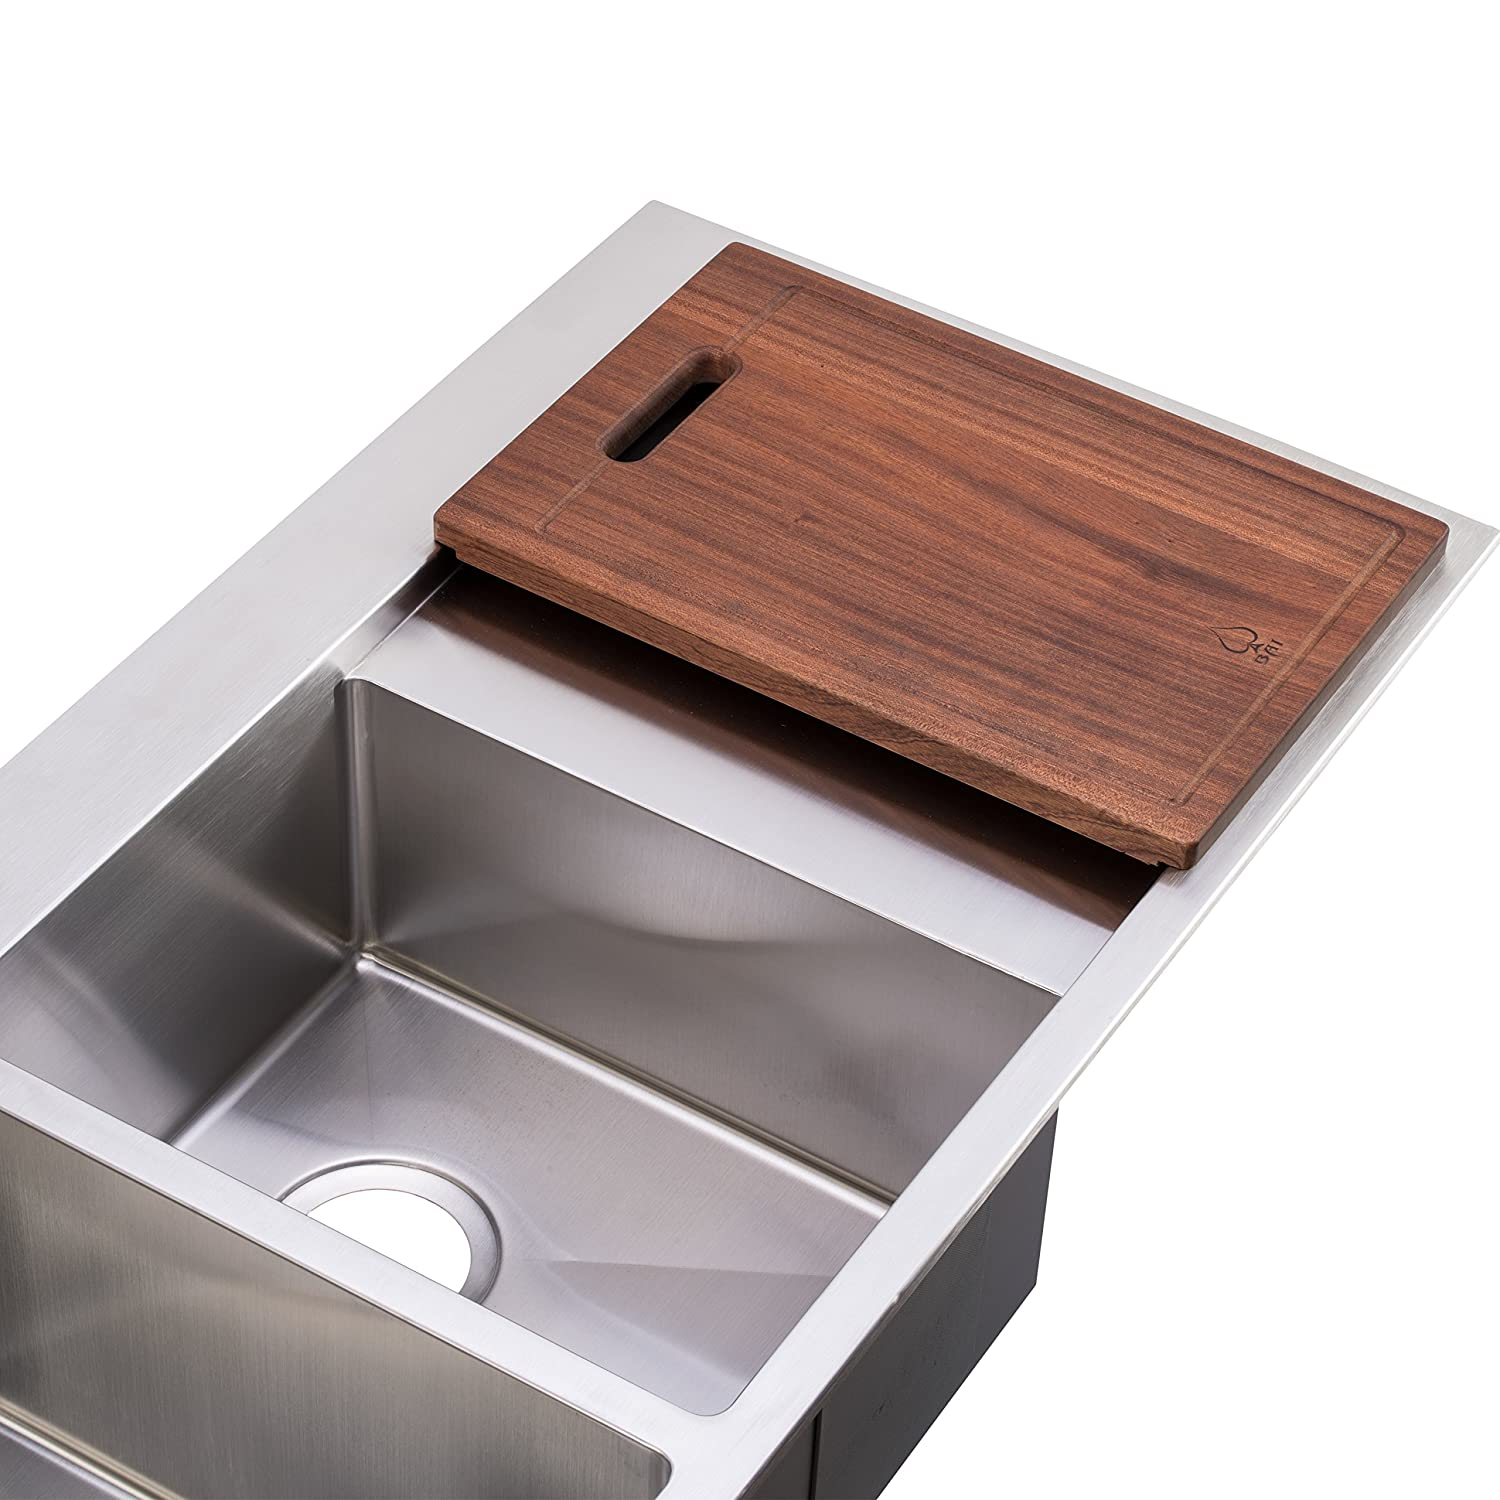 bai 1235 48 handmade stainless steel kitchen sink double bowl